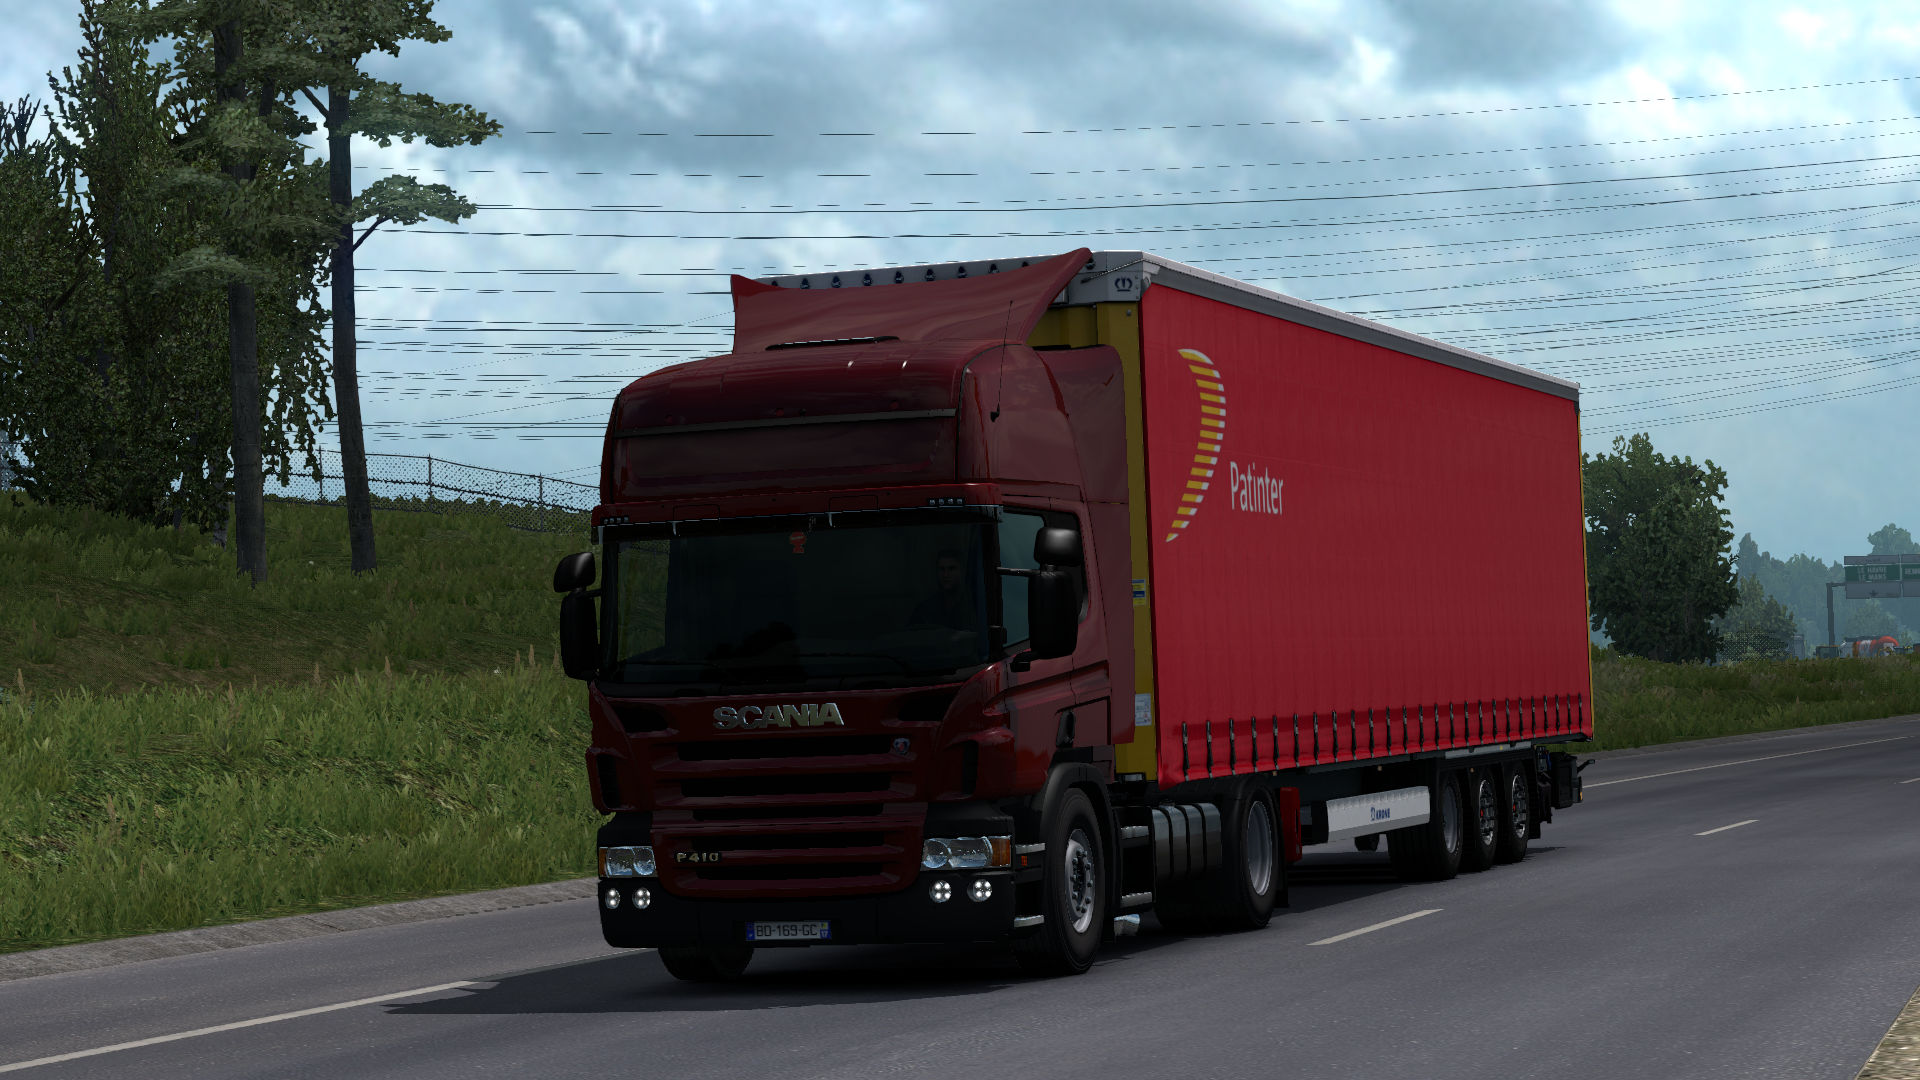 ets2_20200122_212051_00.png